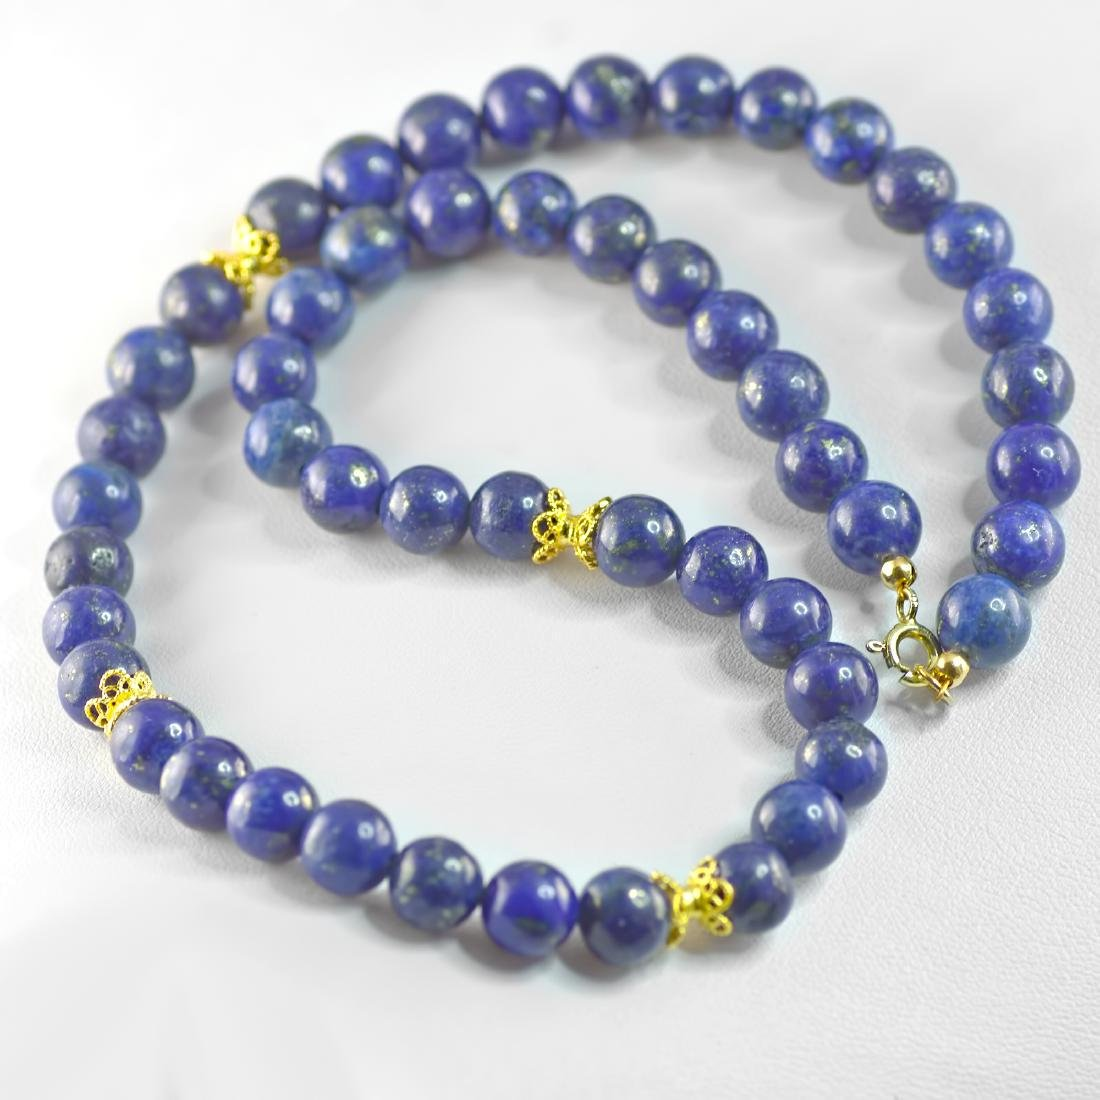 Lapis lazuli Necklace with Golden Accents